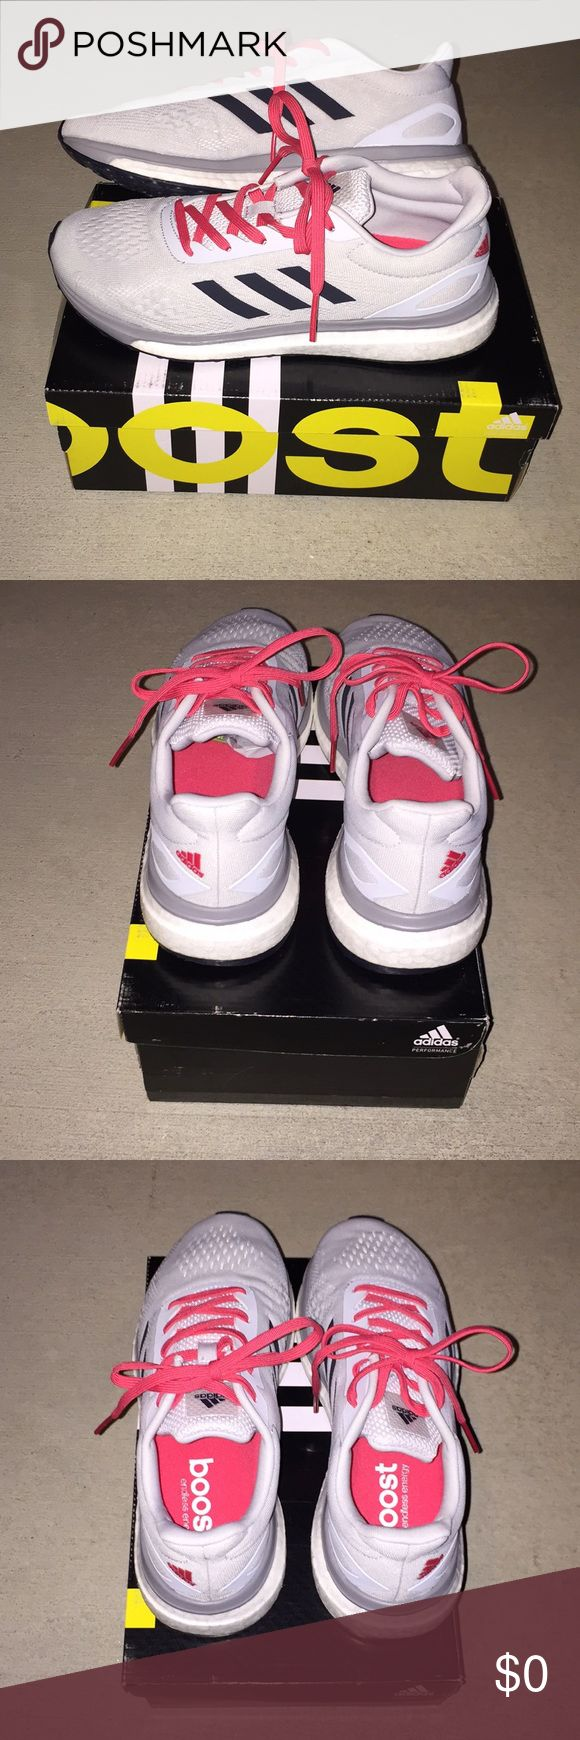 (NEW) Adidas Sonic Drive Running Shoes Grey/Pink Brand new. In box. Women's Sonic Drive Running Shoe. Size: 6 1/2 - runs a whole size big. I am 7-7 1/2 & these fit. 2 pairs for sale 6 1/2 & 6. See last pic of size chart.  Color: Grey w/pink'ish/coral'ish accent in laces & adidas logo back right. Boost technology.  ☑️ Smoke/pet free ☑️ No trades - don't ask ☑️ Item is available for purchase - no need to ask ☑️ Ships out same day from Southern CA  THANKS FOR LOOKING! PLEASE BE SURE TO CHECK…